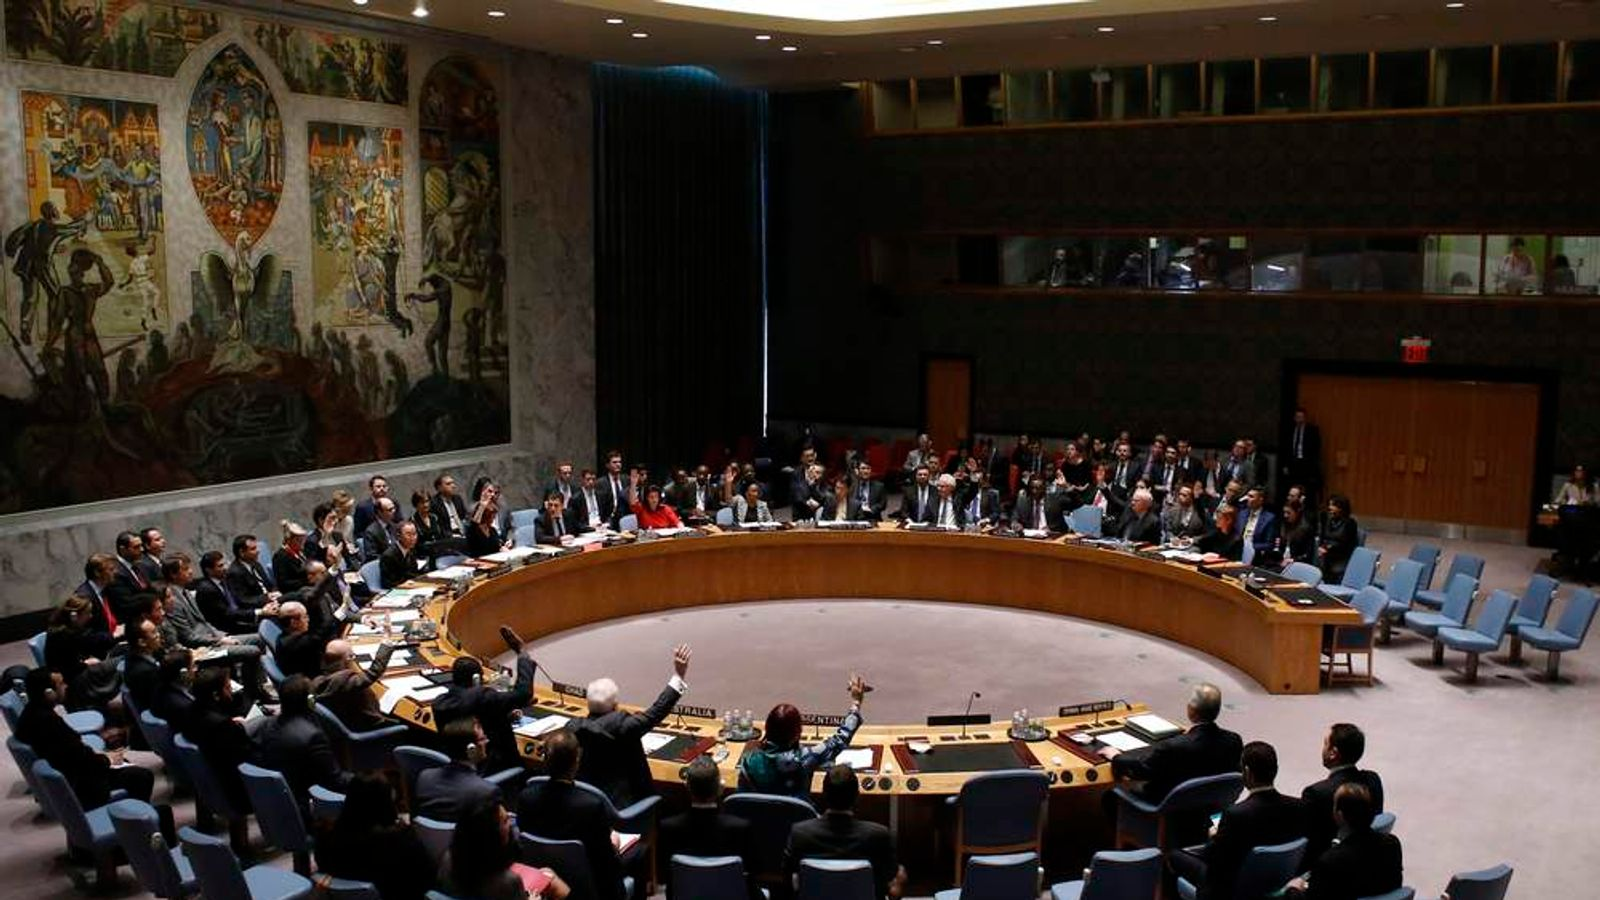 United Nations Security Council votes on resolution on humanitarian aid for Syria at U.N. headquarters in New York